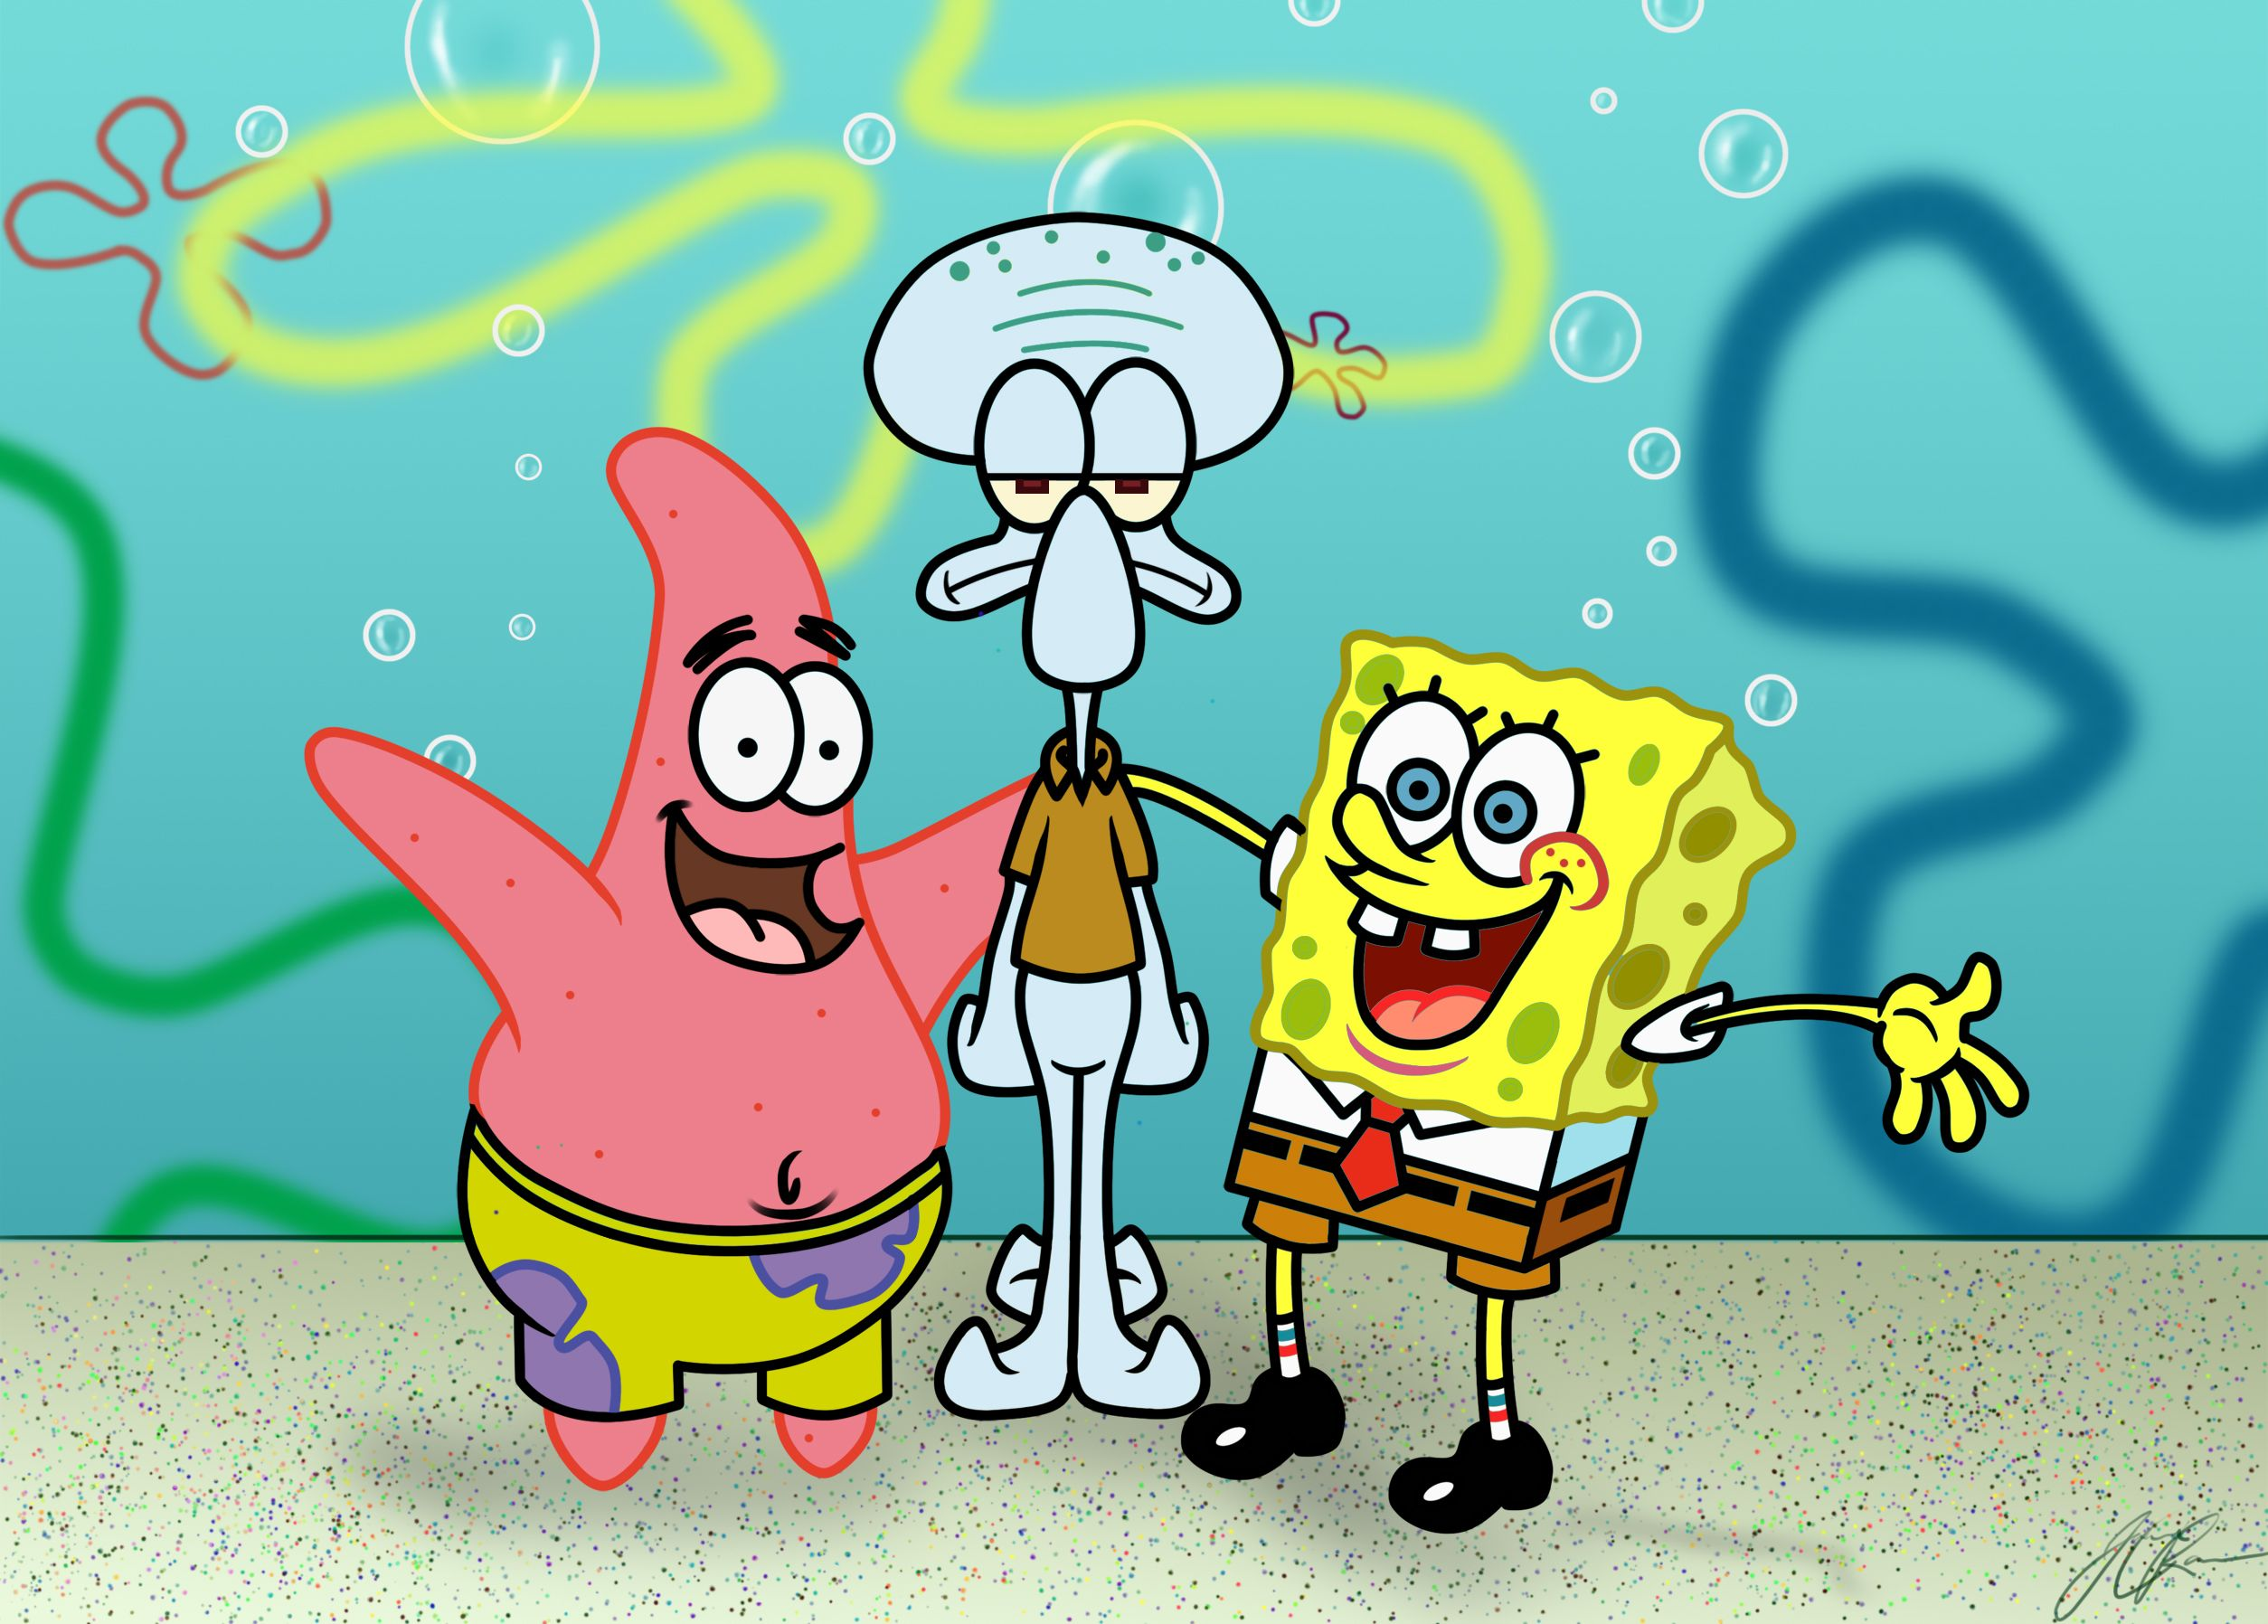 10. Watching SpongeBob SquarePants